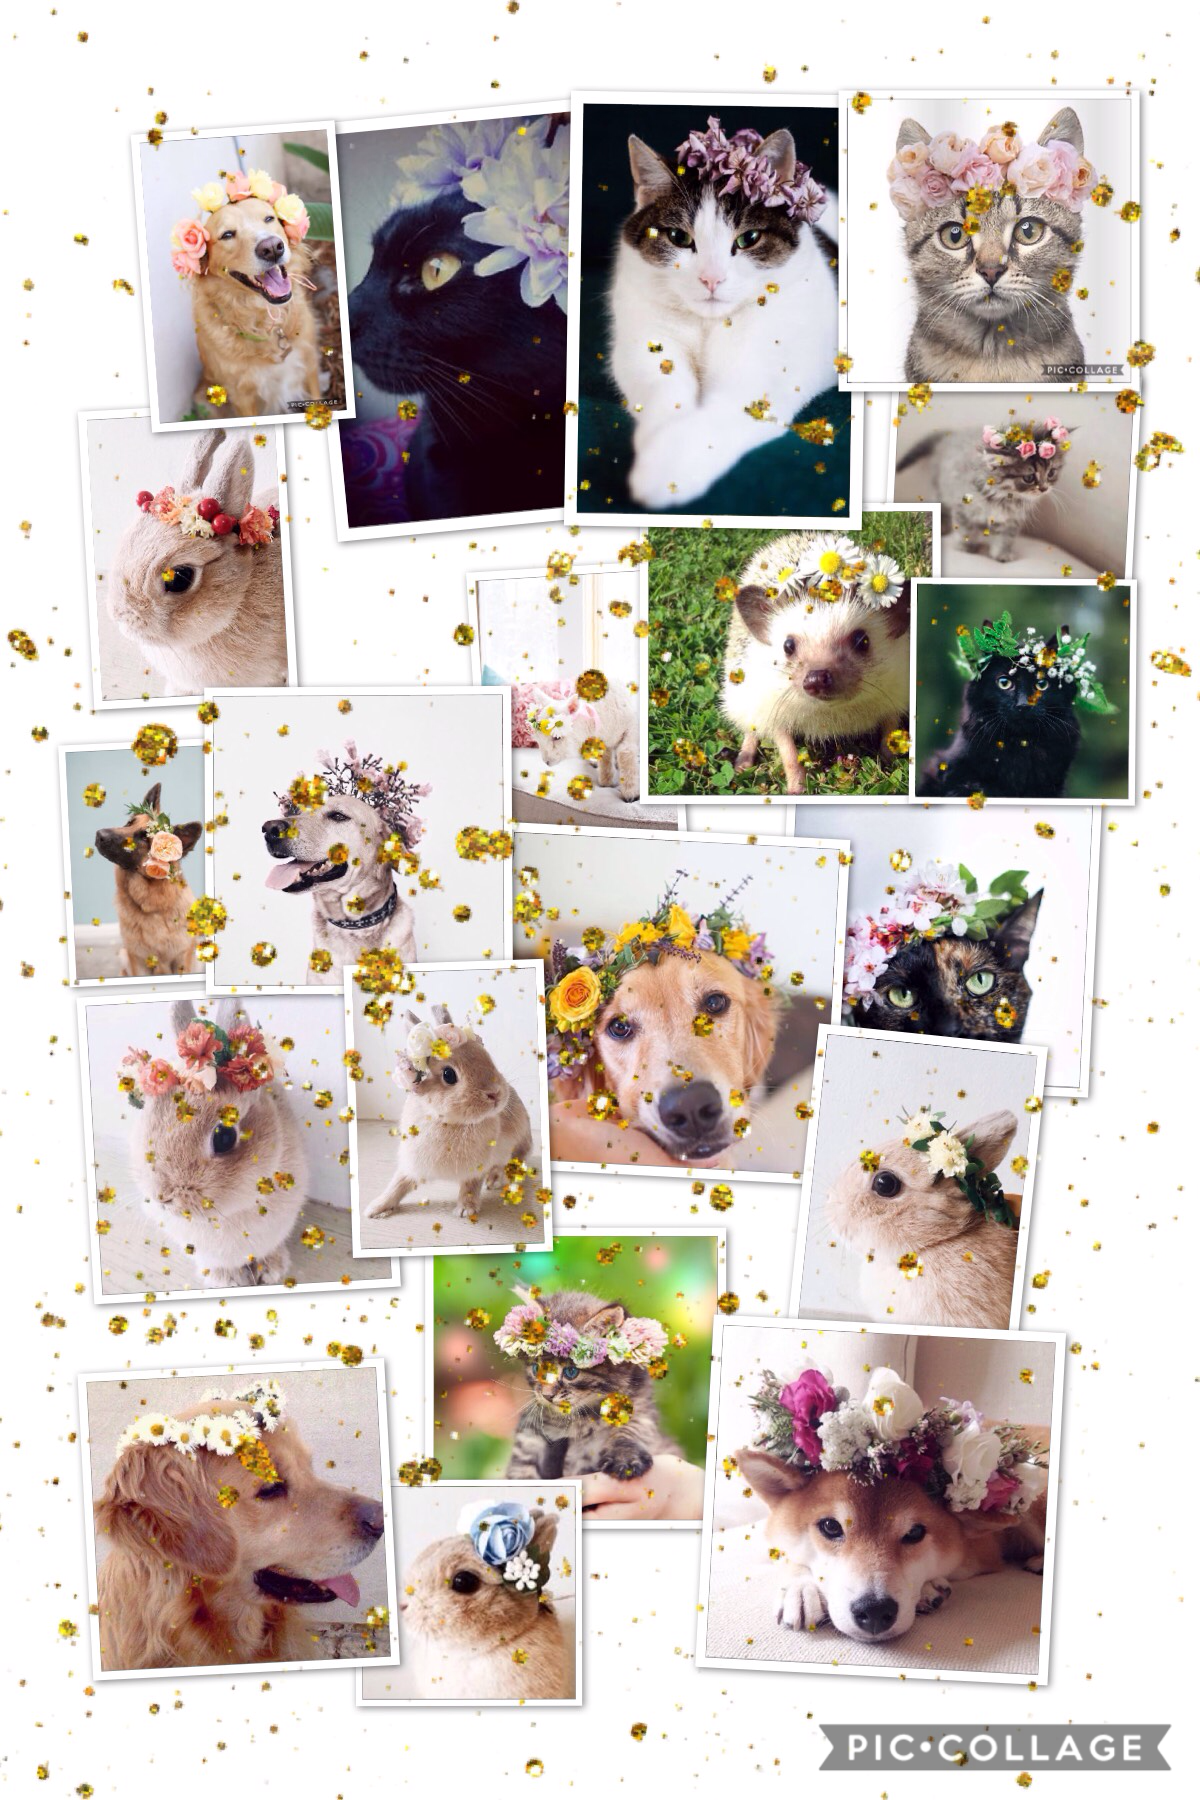 Go follow flowercrowns-on-animals! The pics that are posted are gorgeous! These are just a few of them! FYI, I will have a contest on my extras page... be sure to join when it comes out!